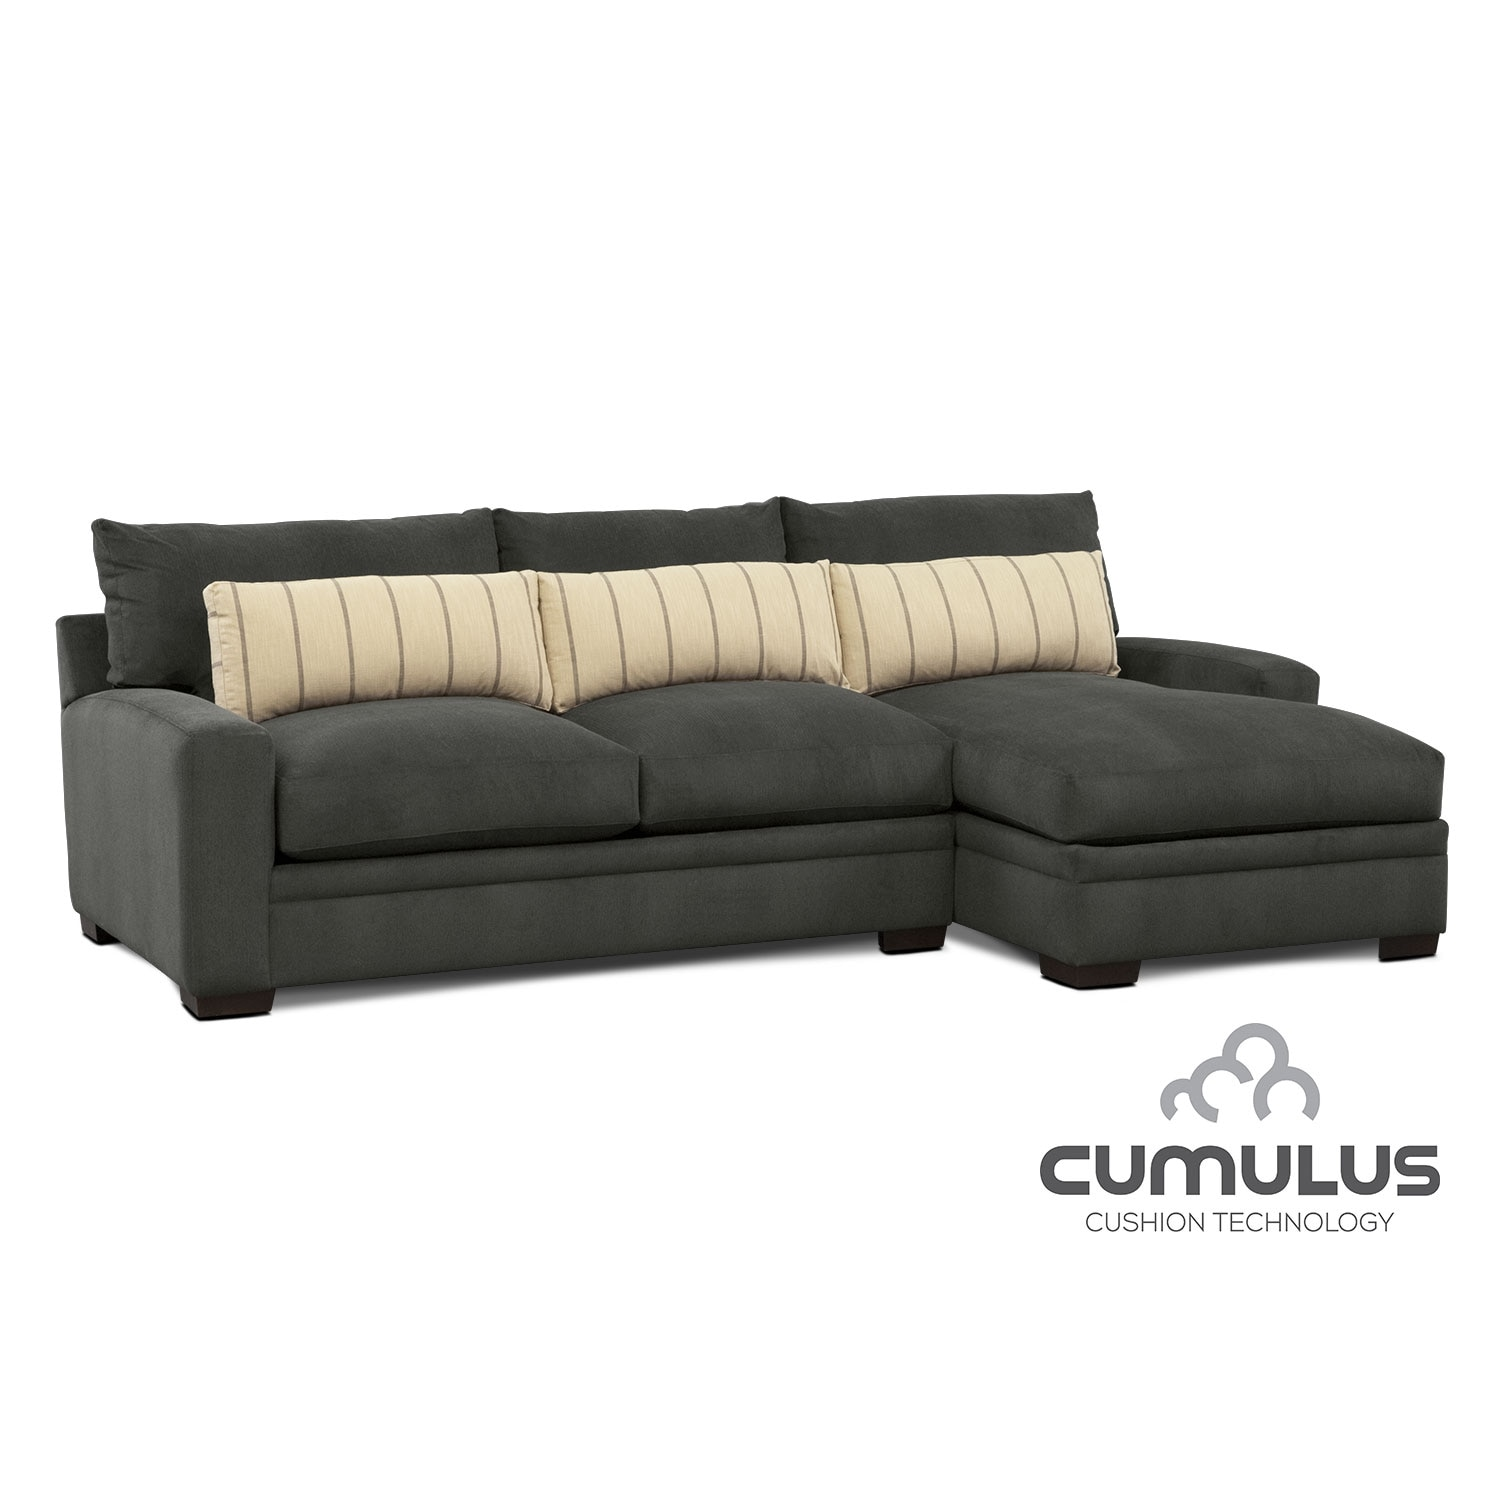 Ventura 2-Piece Sectional with Right-Facing Chaise - Charcoal